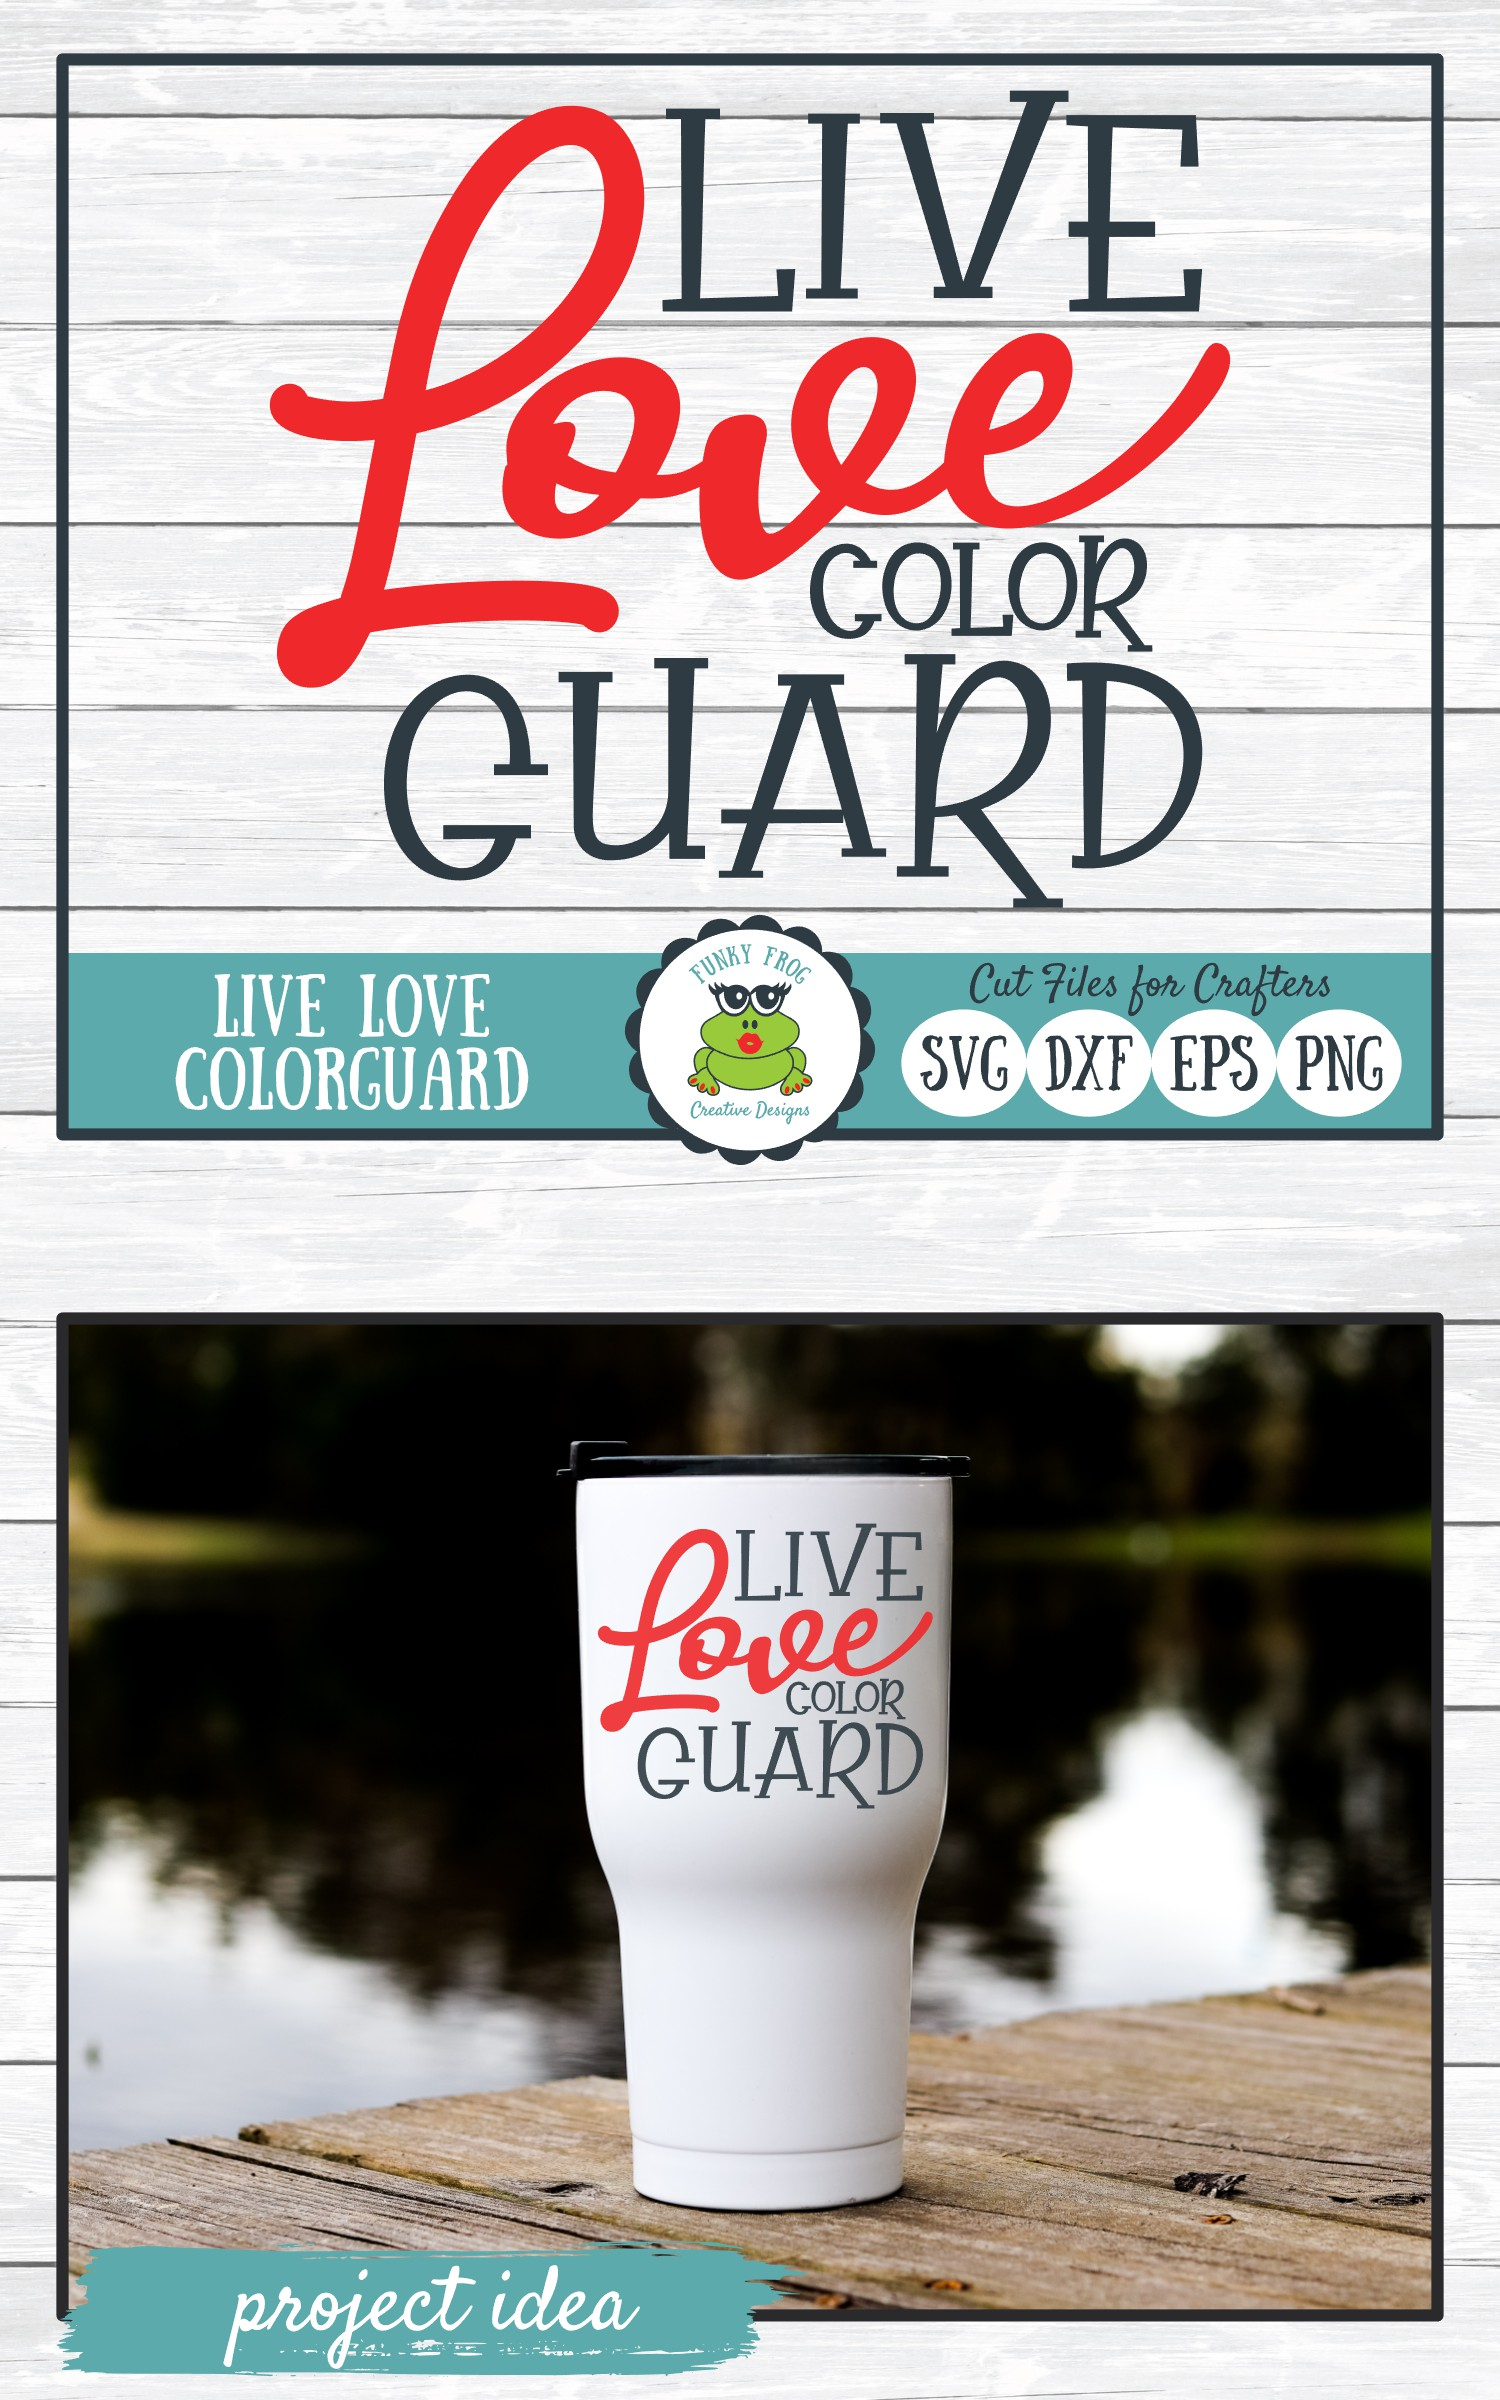 Live Love Color Guard SVG Cut File for Crafters example image 4